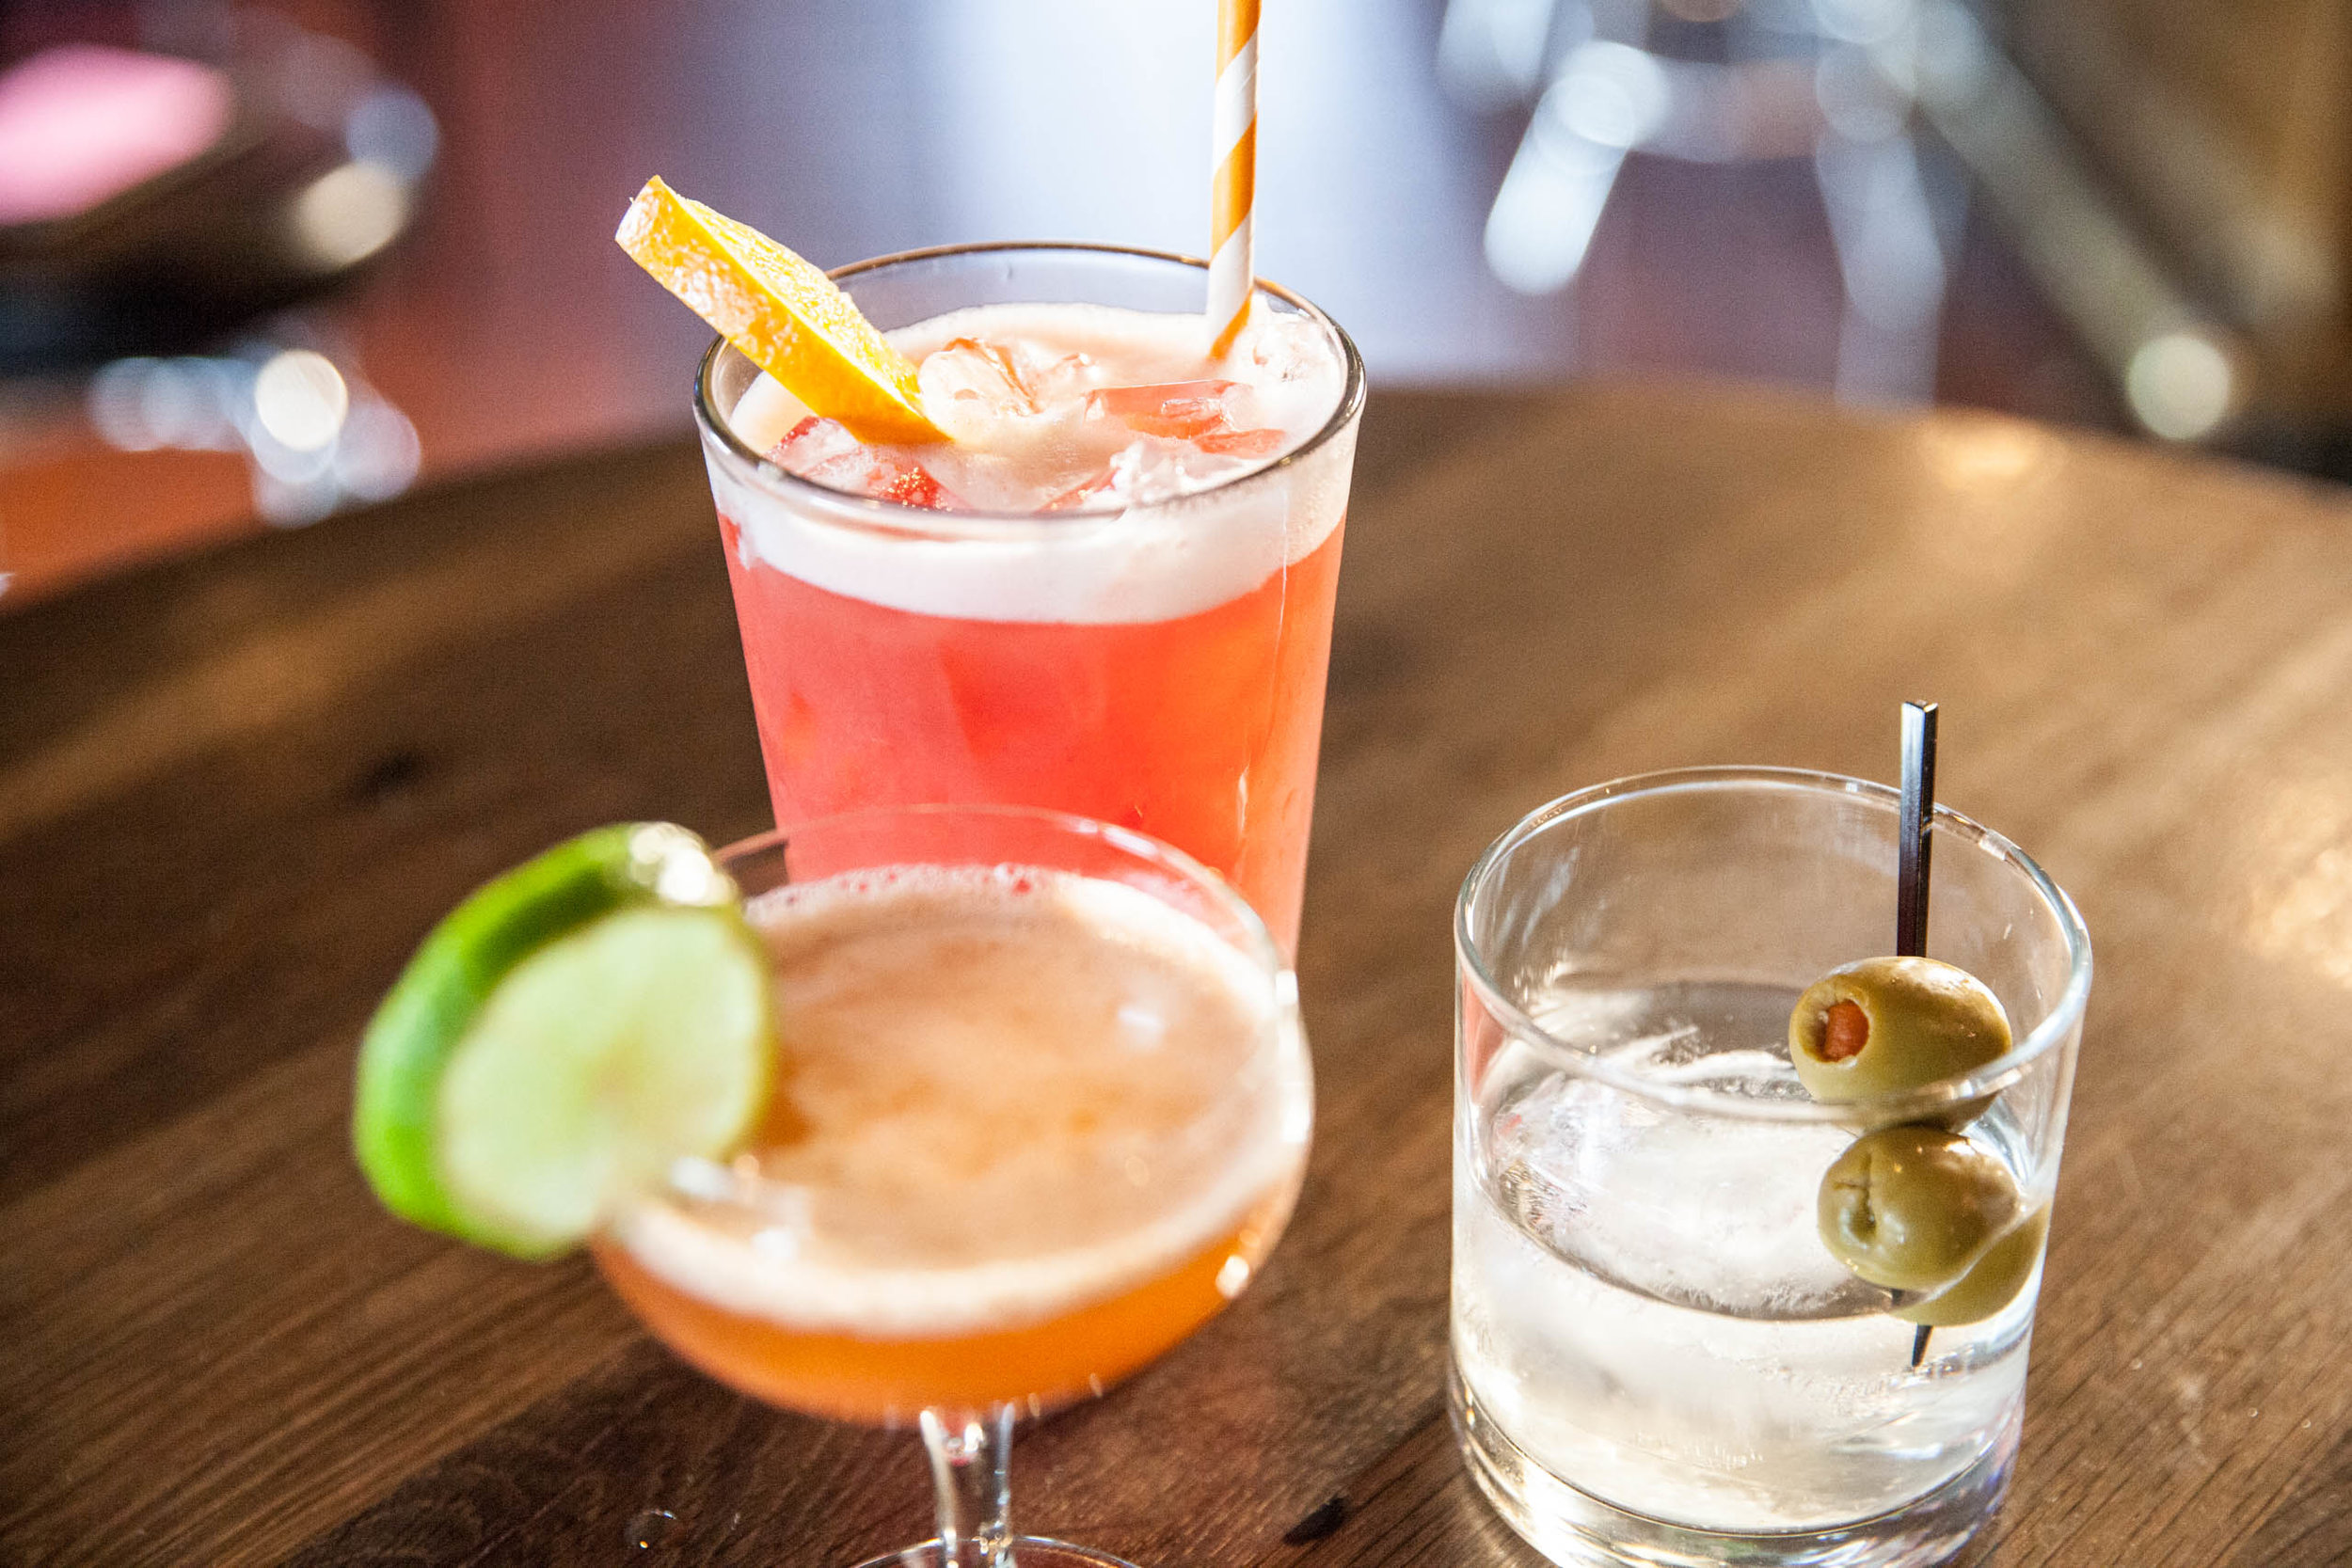 Drinks - Whether you're looking for an old standard or something entirely new, our craft cocktails and local beers never disappoint.